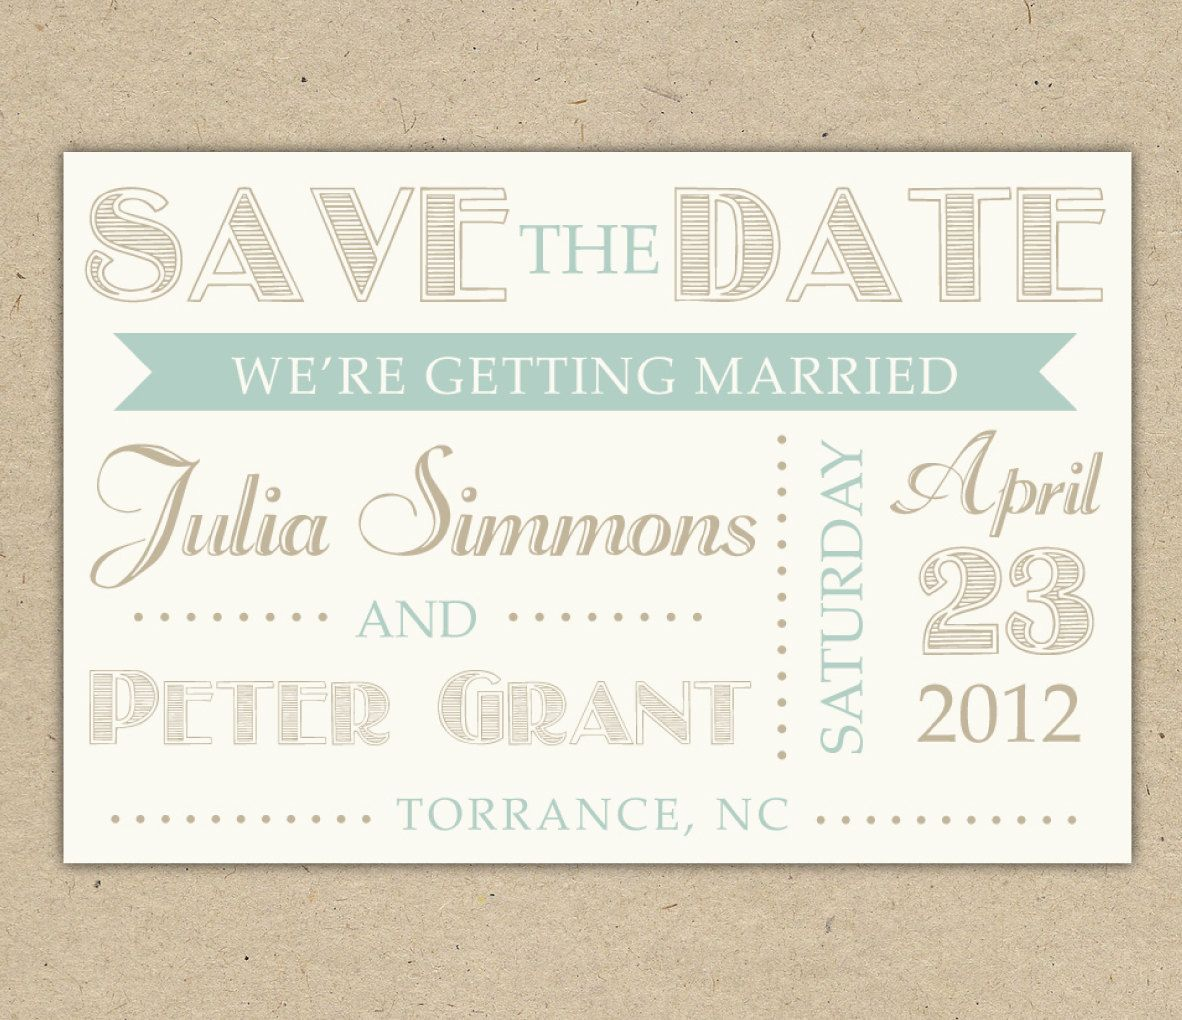 Save The Date Cards Templates For Weddings | Template, The o\'jays ...